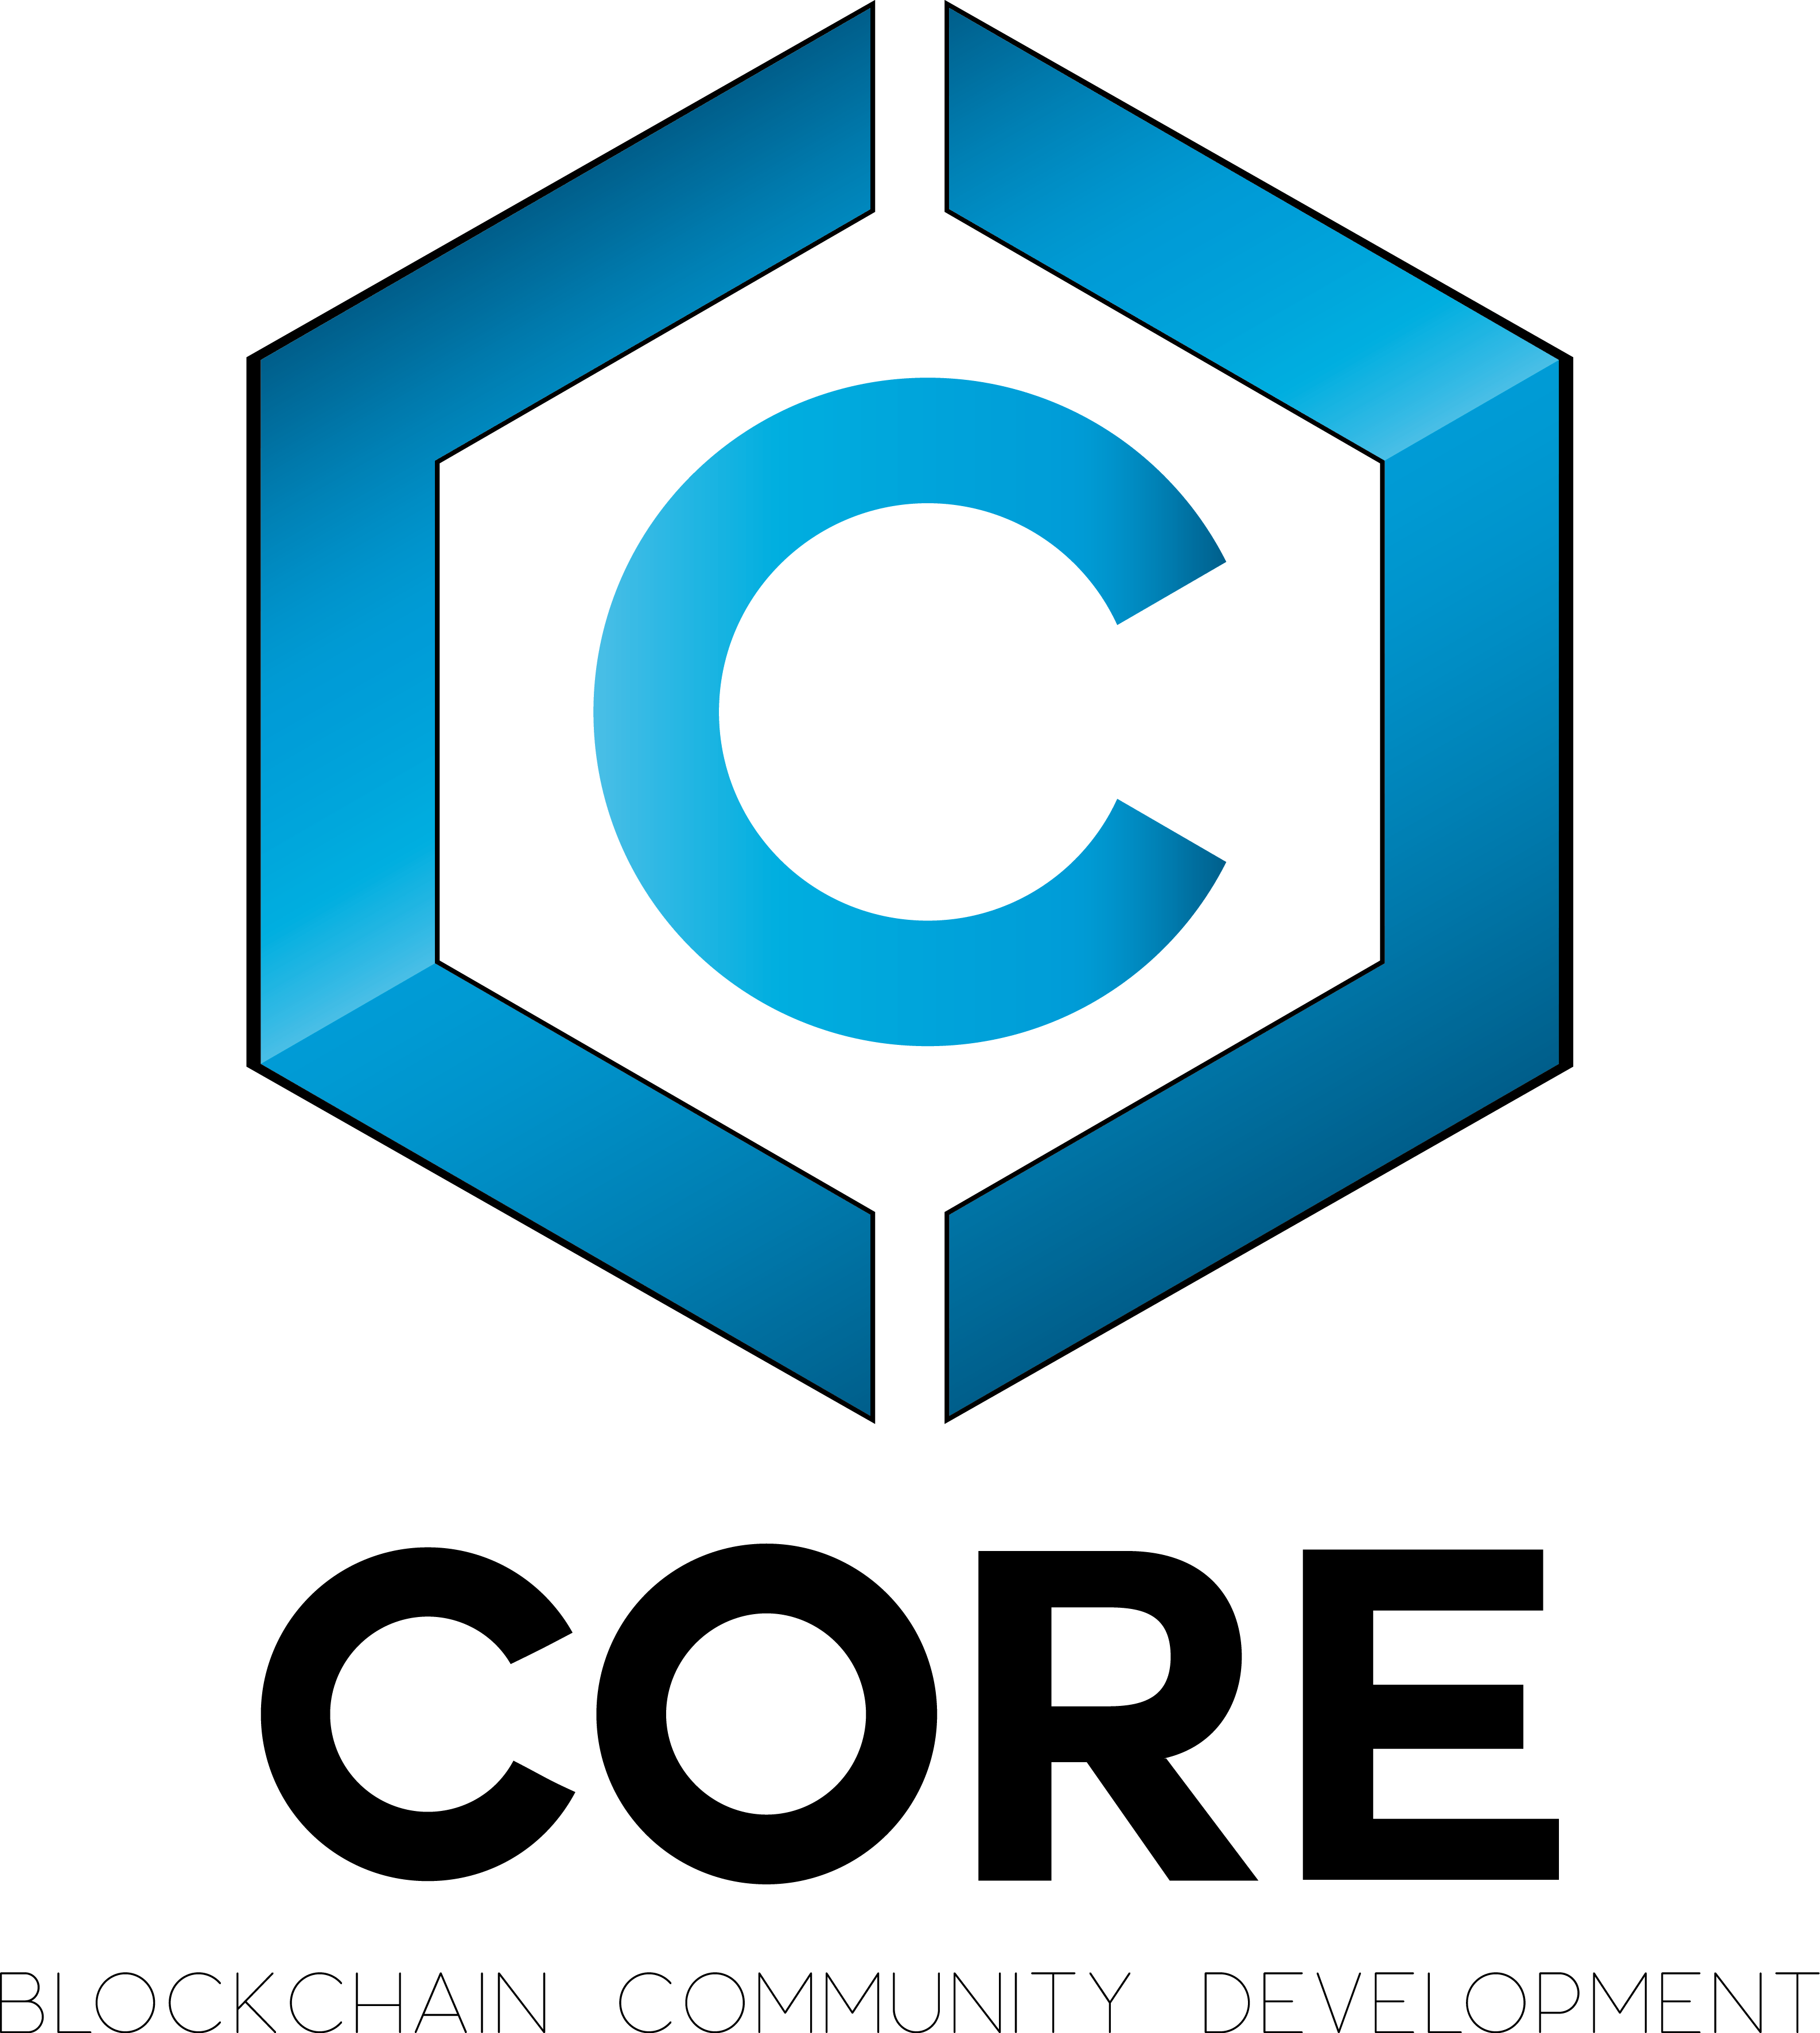 Core Admin ico review & rating